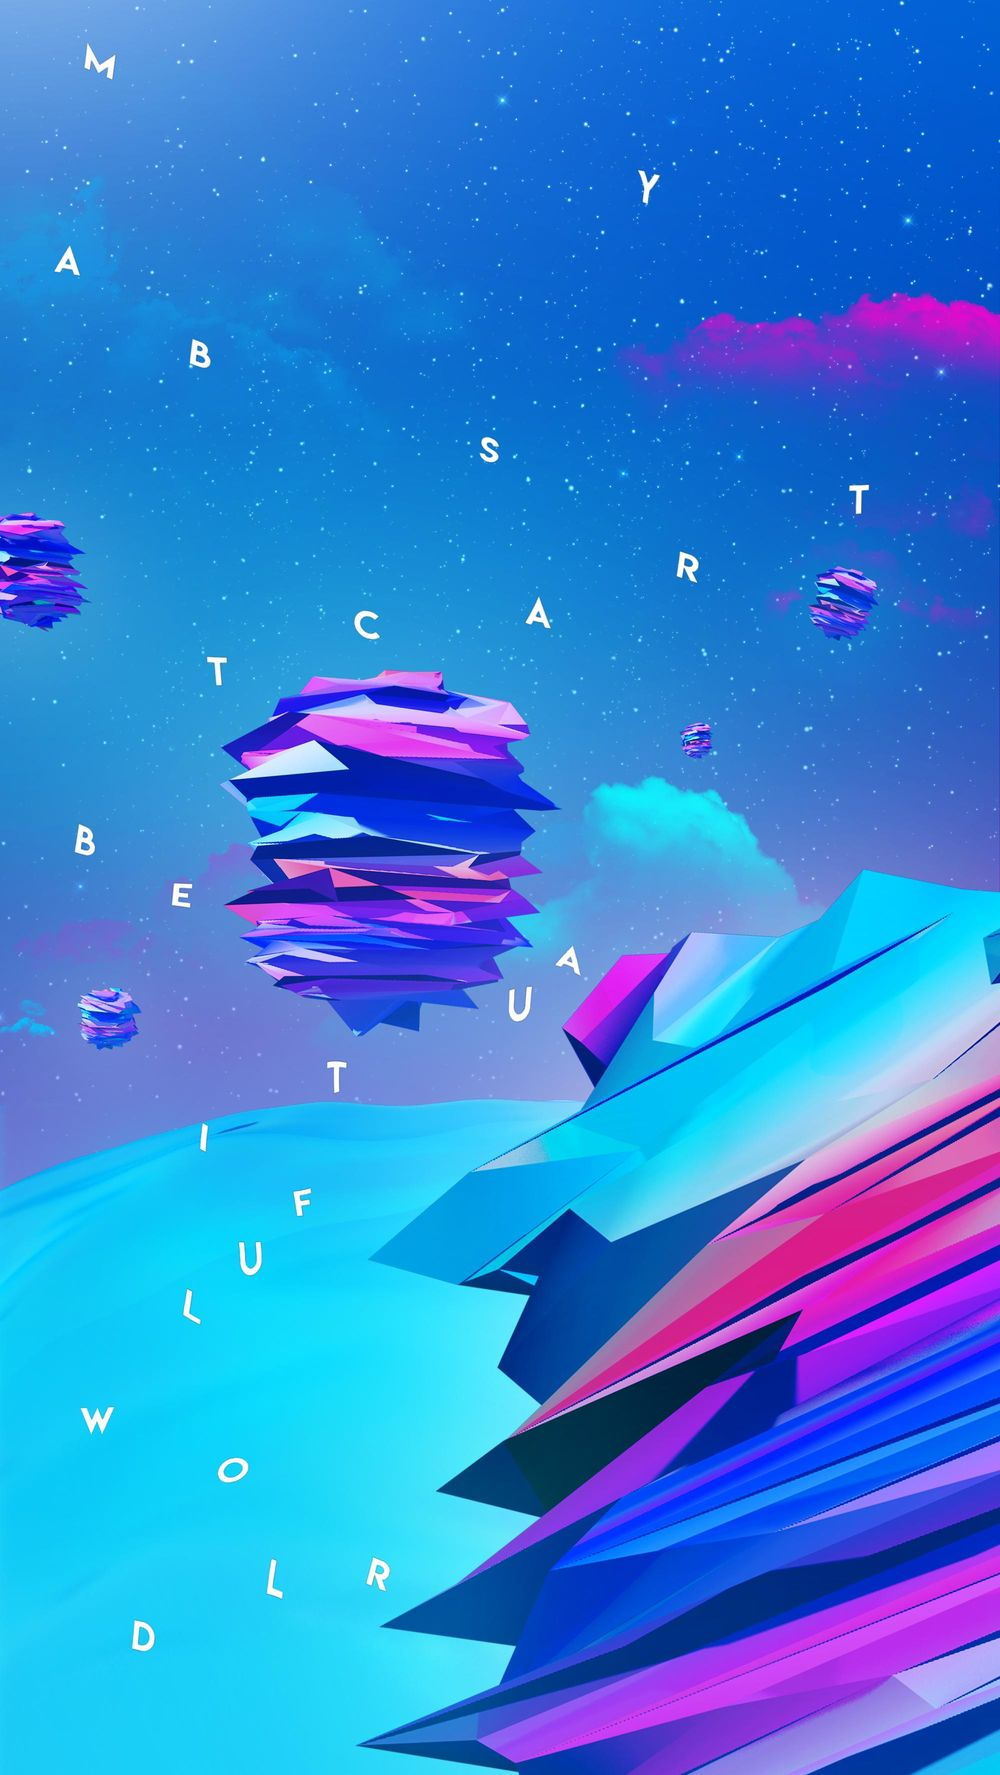 Abstract Colorful Artwork Using Photoshop and Cinema4D - image 2 - student project